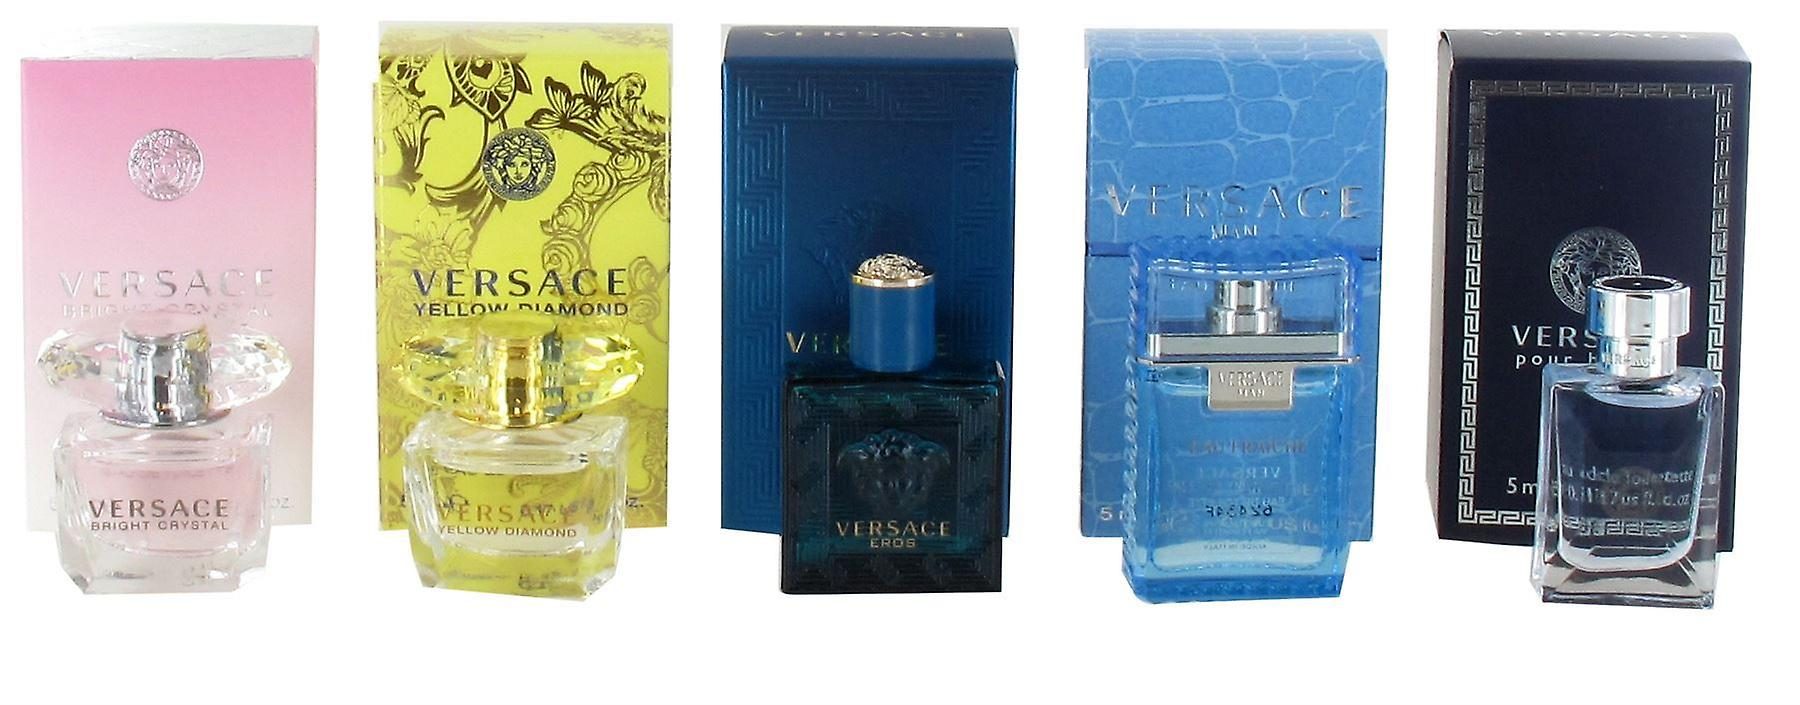 Versace Miniatures Gift Set for Women and Men - Yellow Diamond 5ml Eau de  Toilette e67fc0319a397